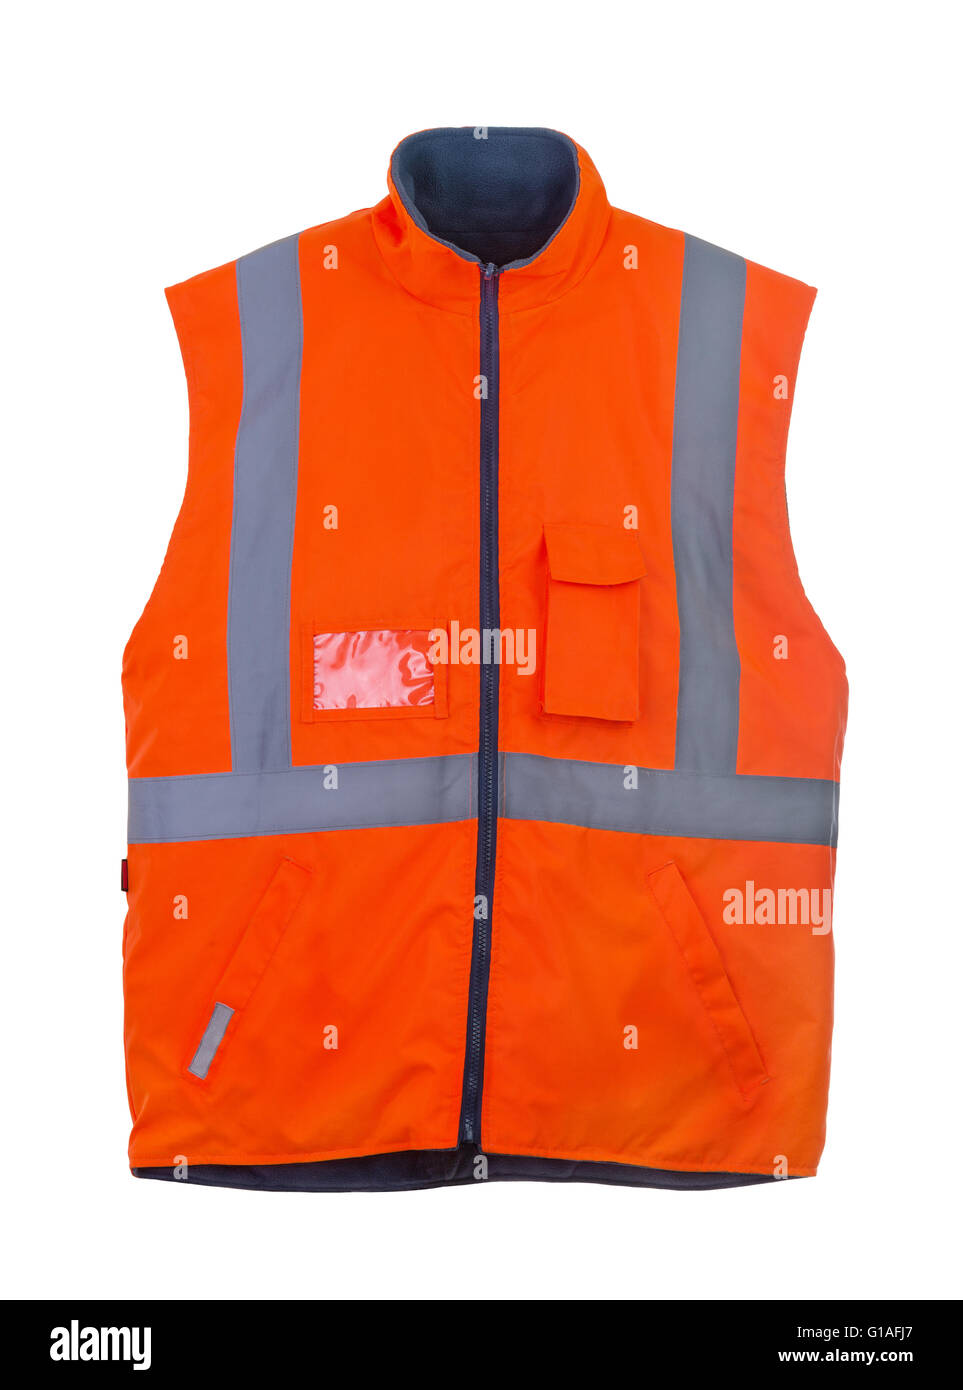 Safety orange reflective winter vest isolated on white - Stock Image